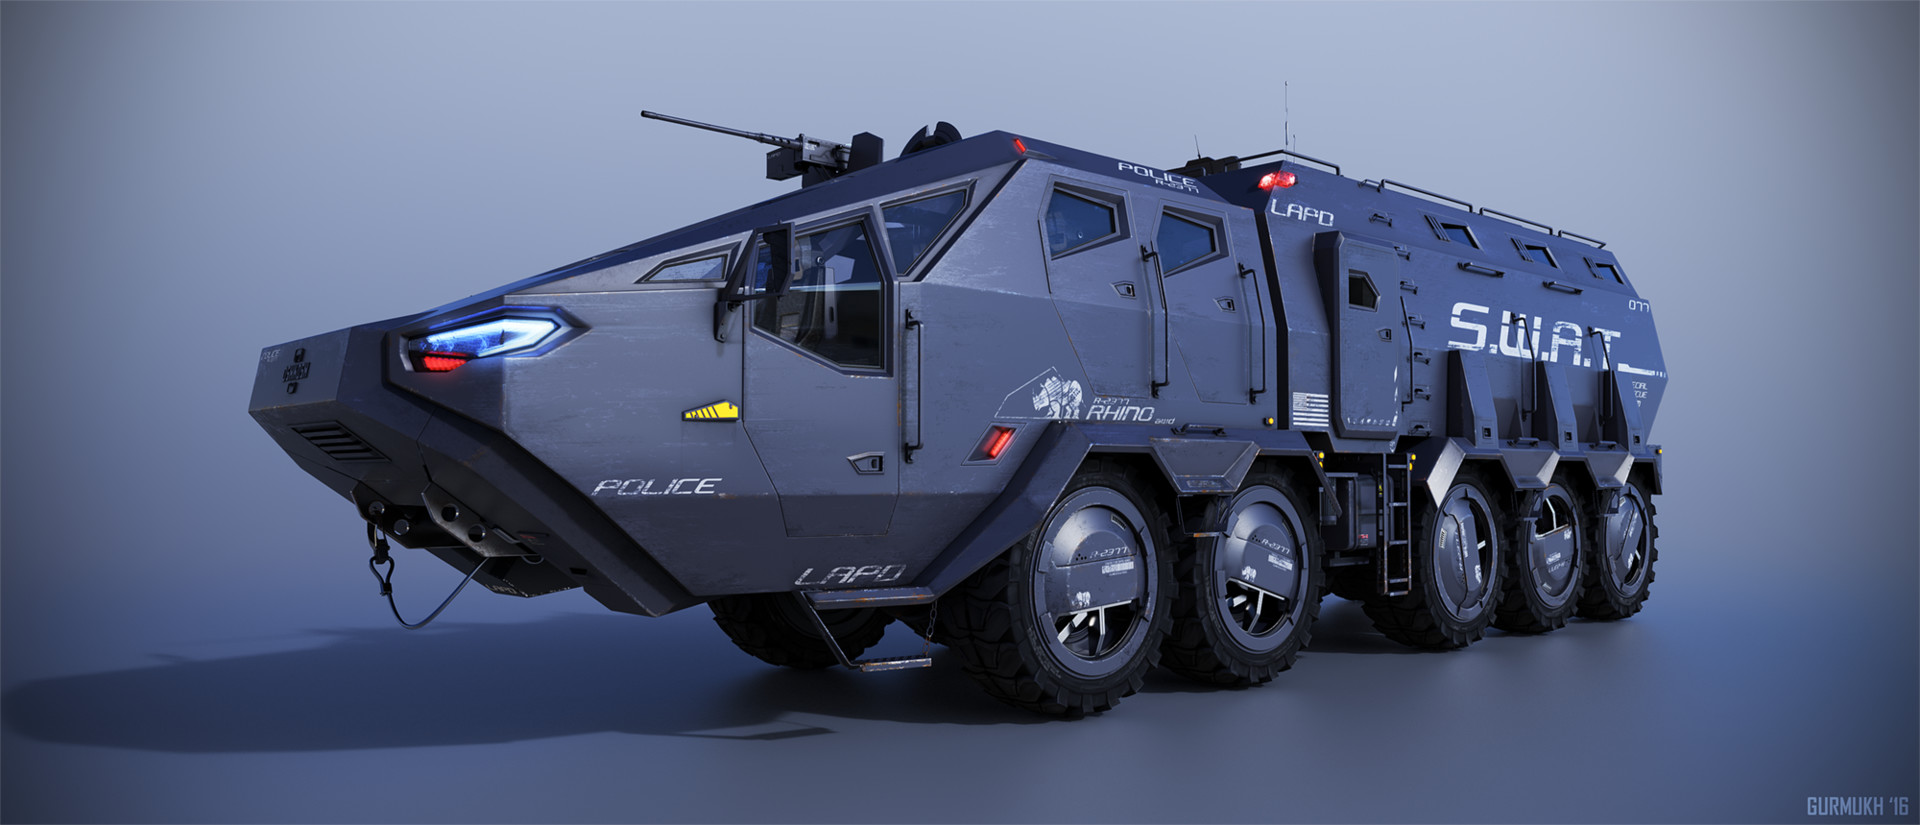 Gurmukh bhasin gurmukh swat truck final 01bs